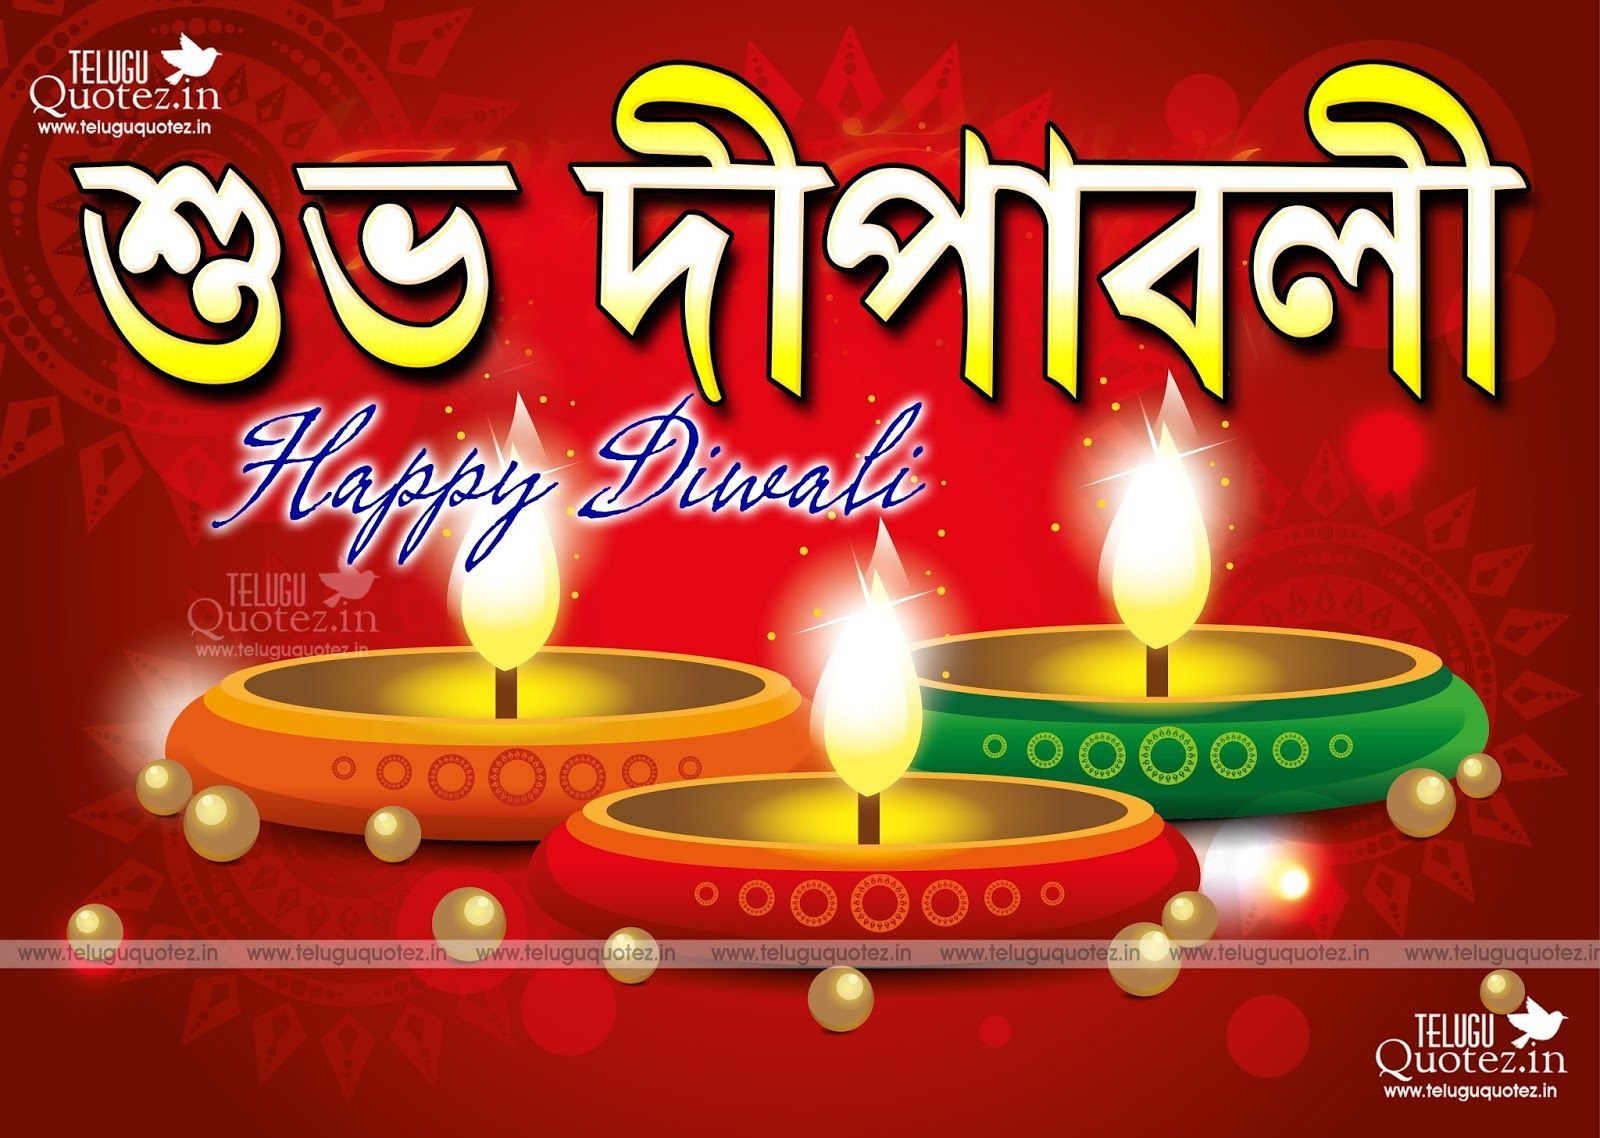 Here is a 2015 deepavali bengali language quotes and messages online happy diwali quotes messages wishes in bengali happy diwali greetings wishes rangoli messages images kristyandbryce Choice Image